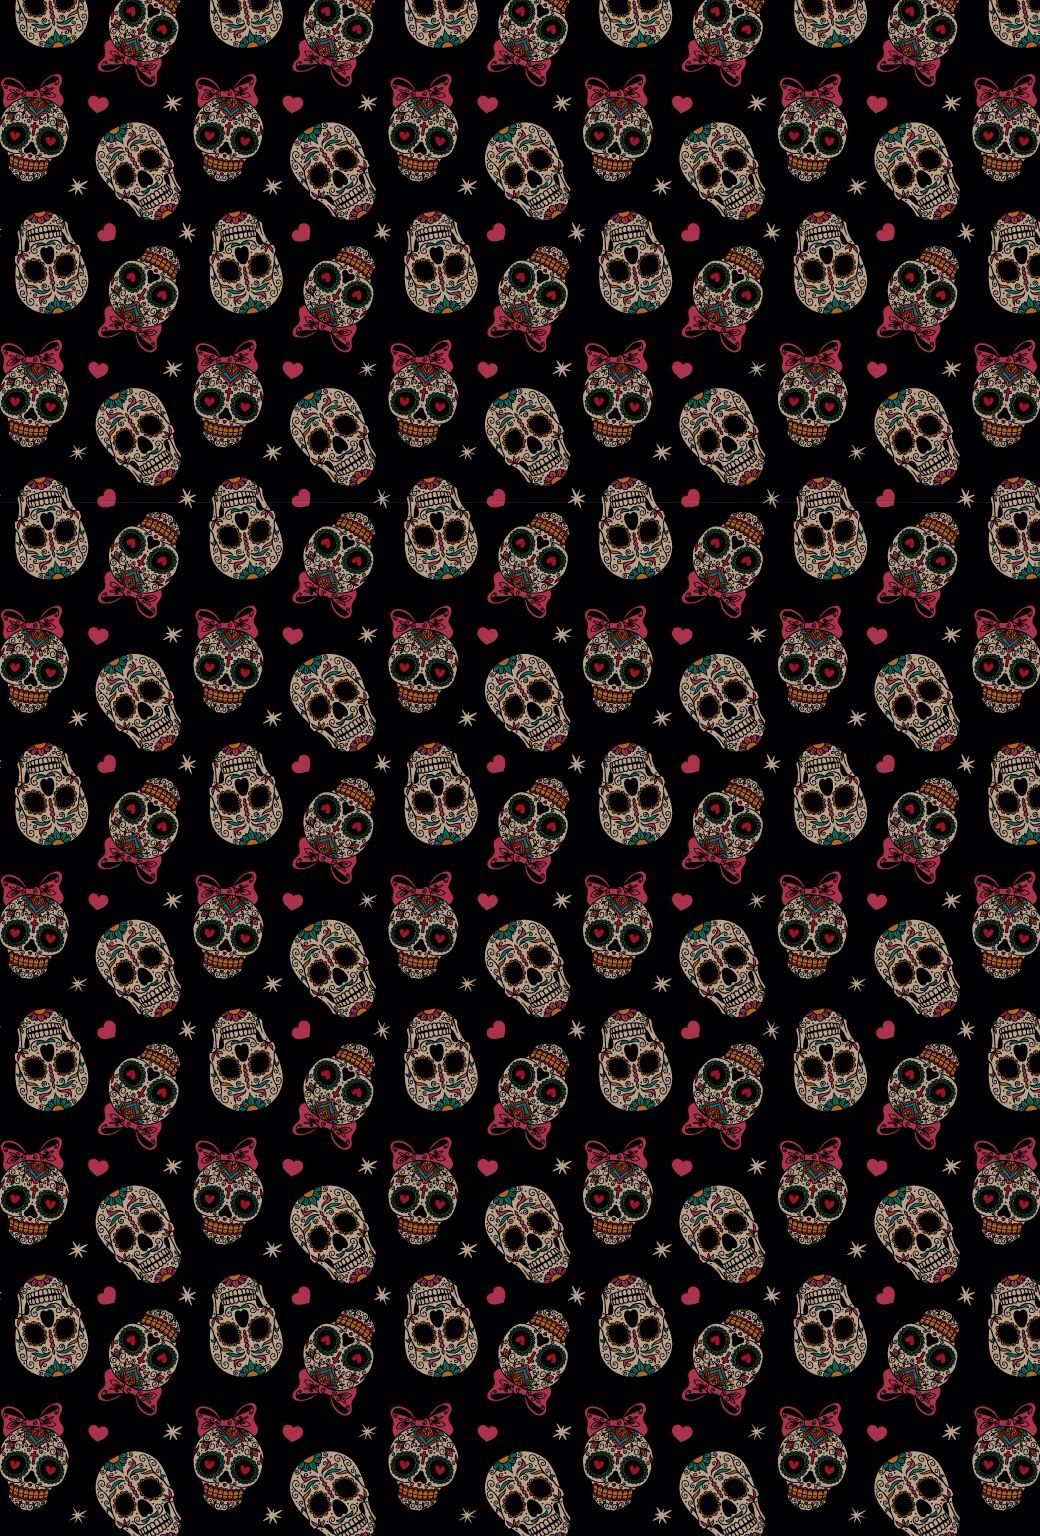 Iphone wallpaper tumblr skull - Iphone Wallpaper